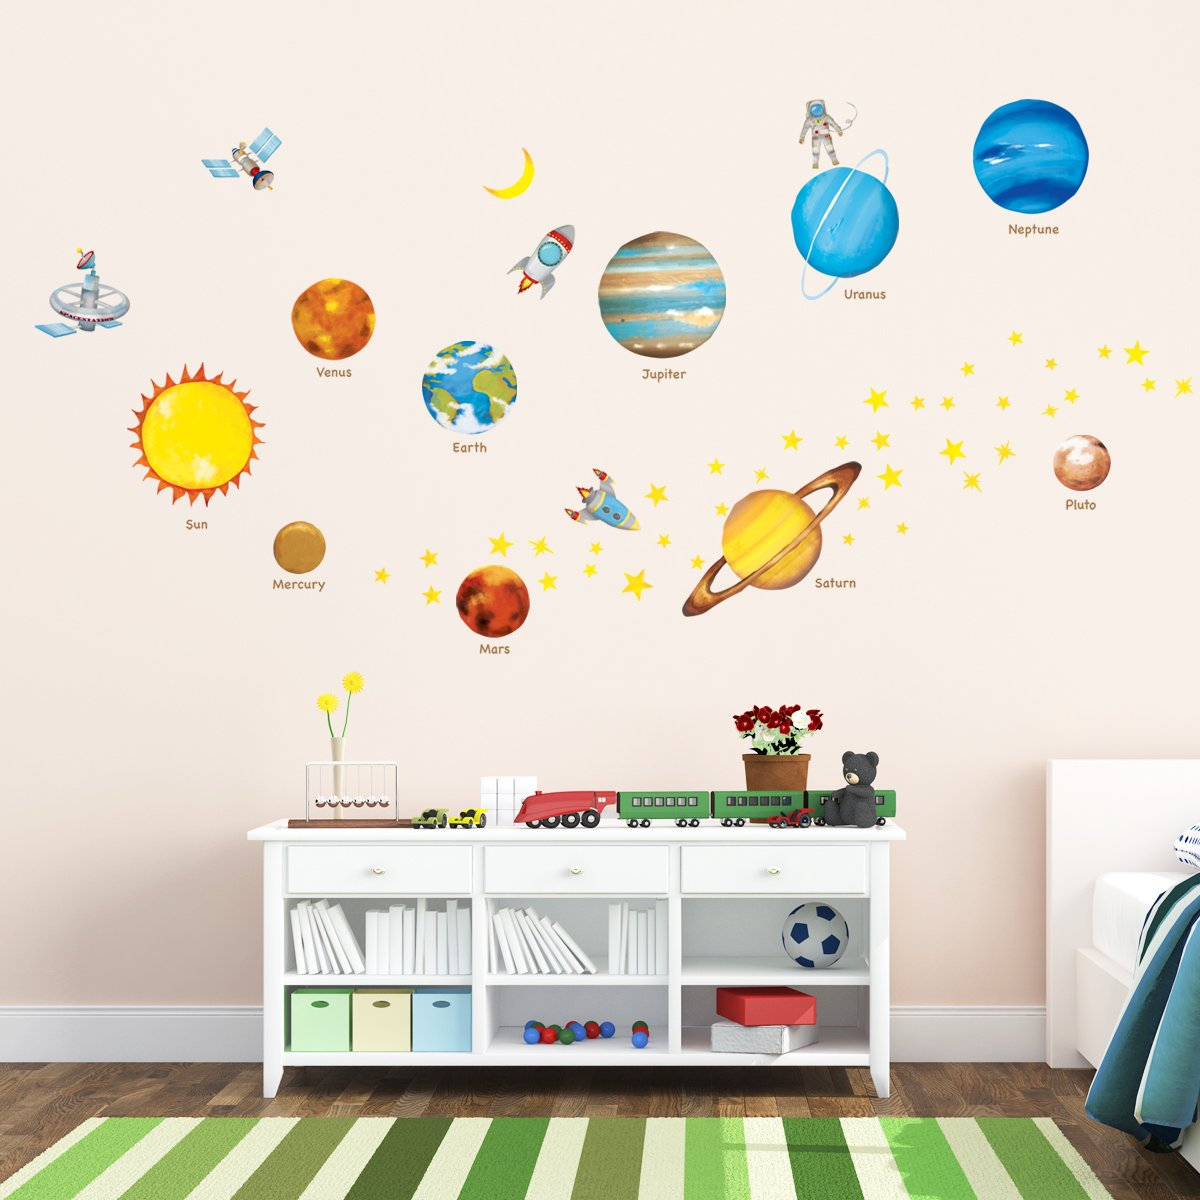 Amazon.com: Decowall DW 1307 Planets In The Space Kids Wall Decals Wall  Stickers Peel And Stick Removable Wall Stickers For Kids Nursery Bedroom  Living ... Part 60